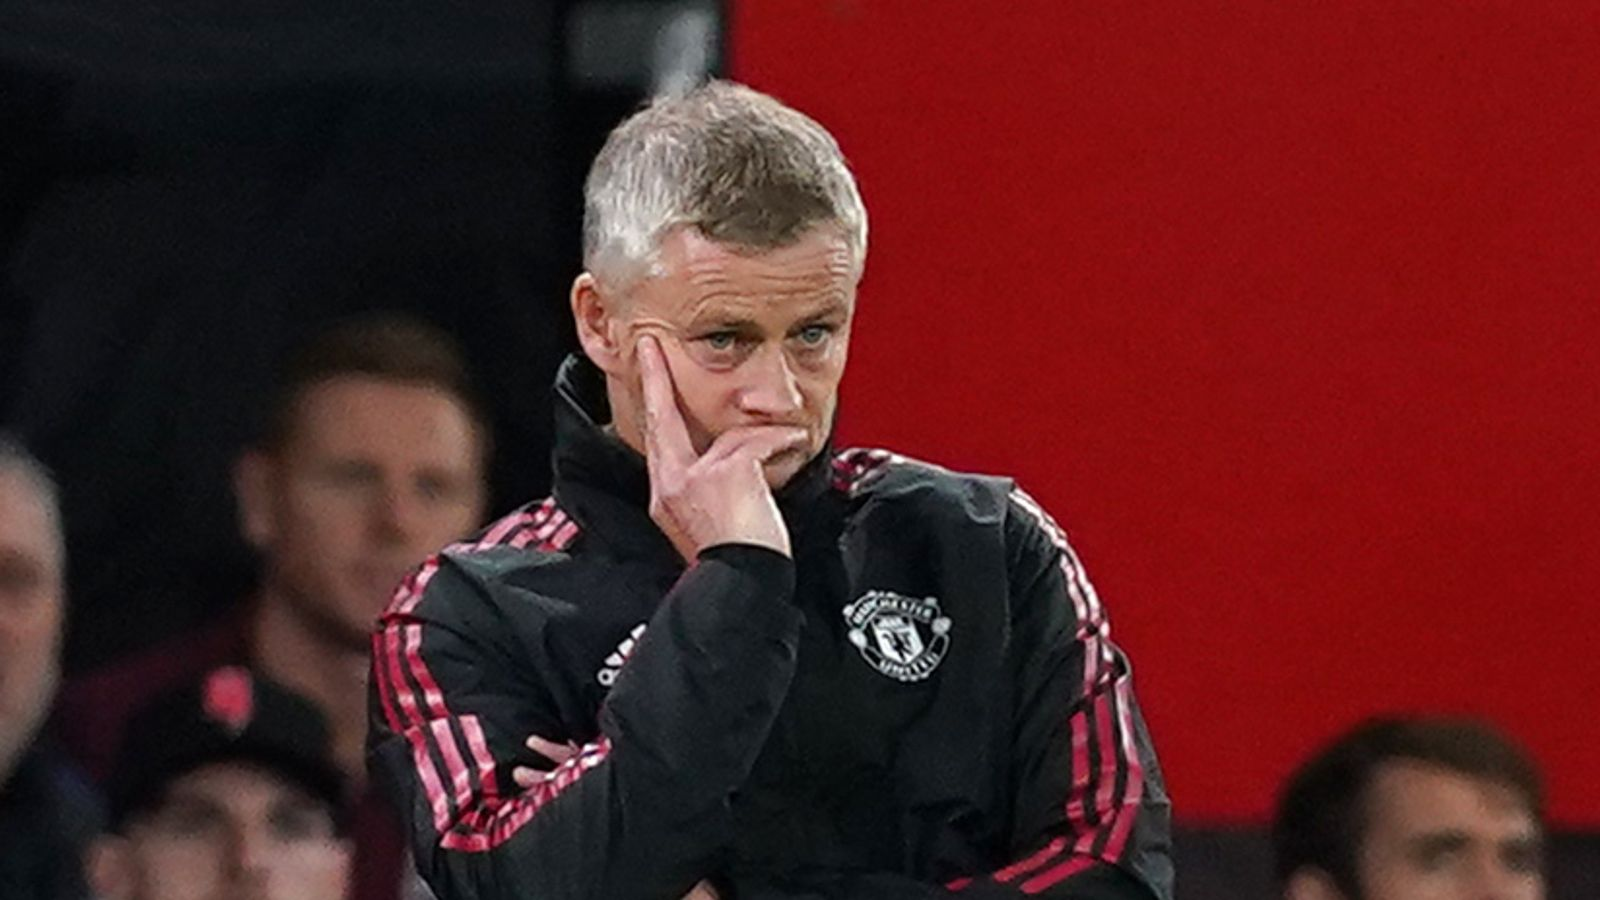 Ole Gunnar Solskjaer appears to suggest Jurgen Klopp is to blame for lack of penalty decisions in Man Utd's favour